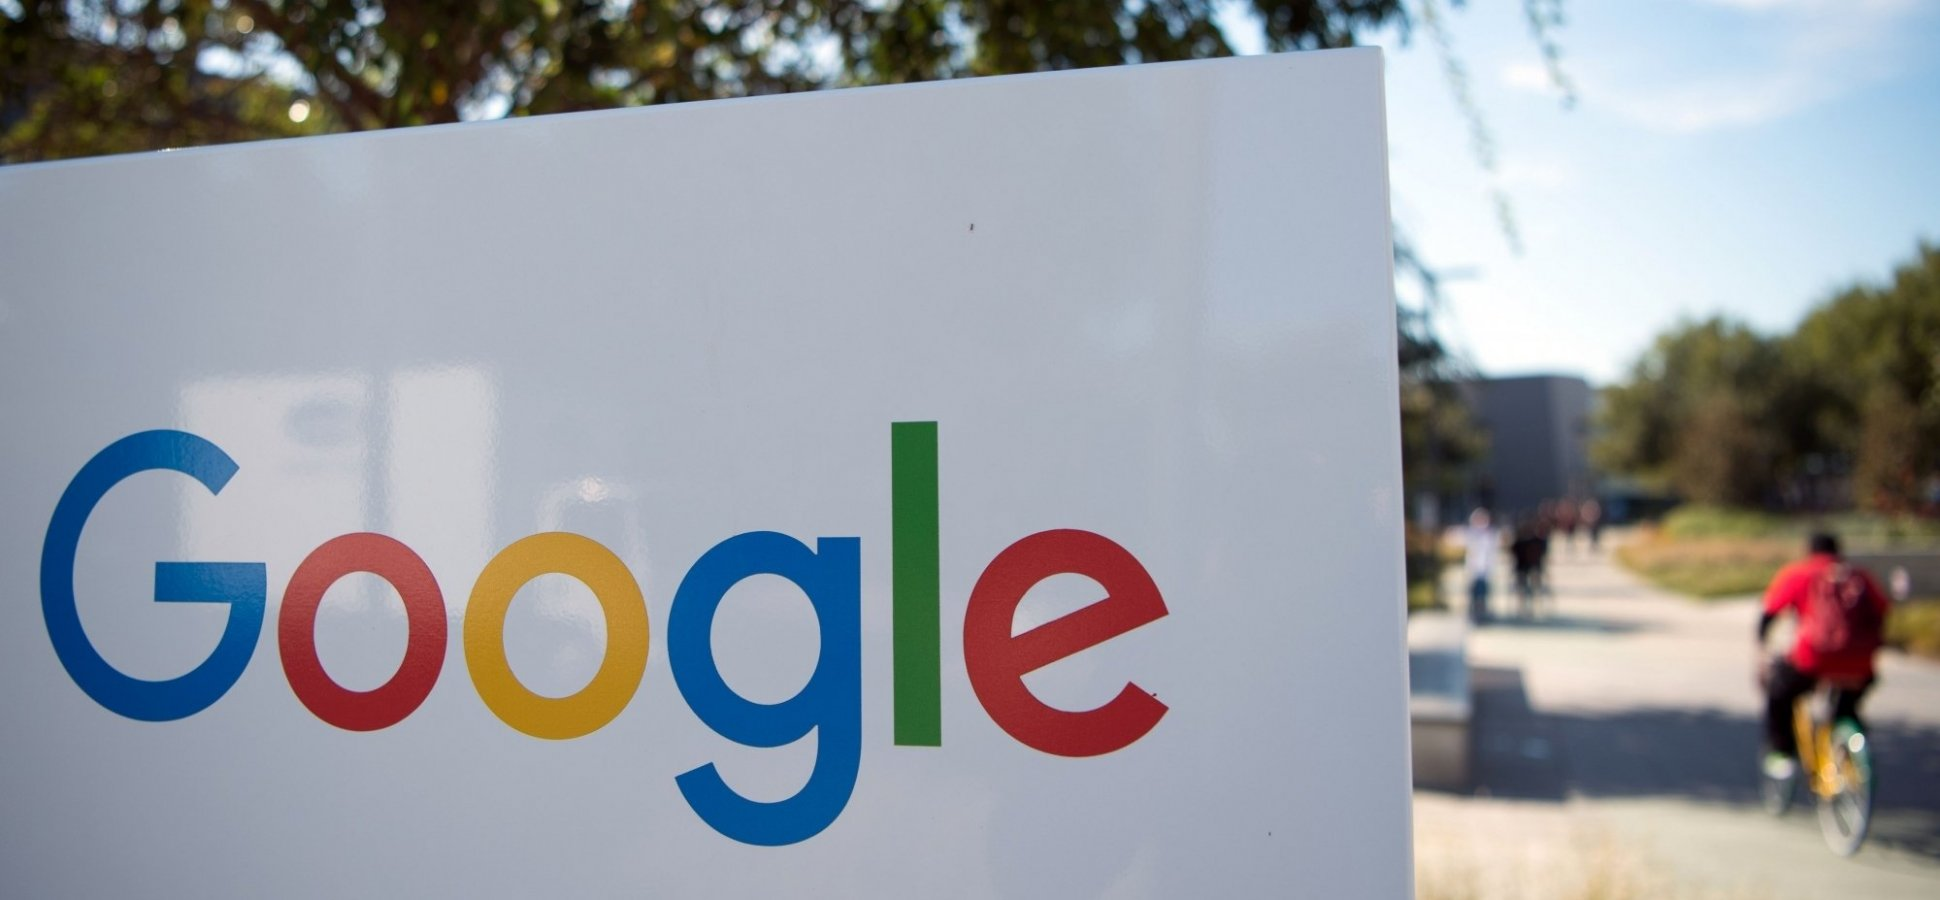 Google Spent a Decade Researching What Makes a Great Boss. They Came Up With These 10 Things